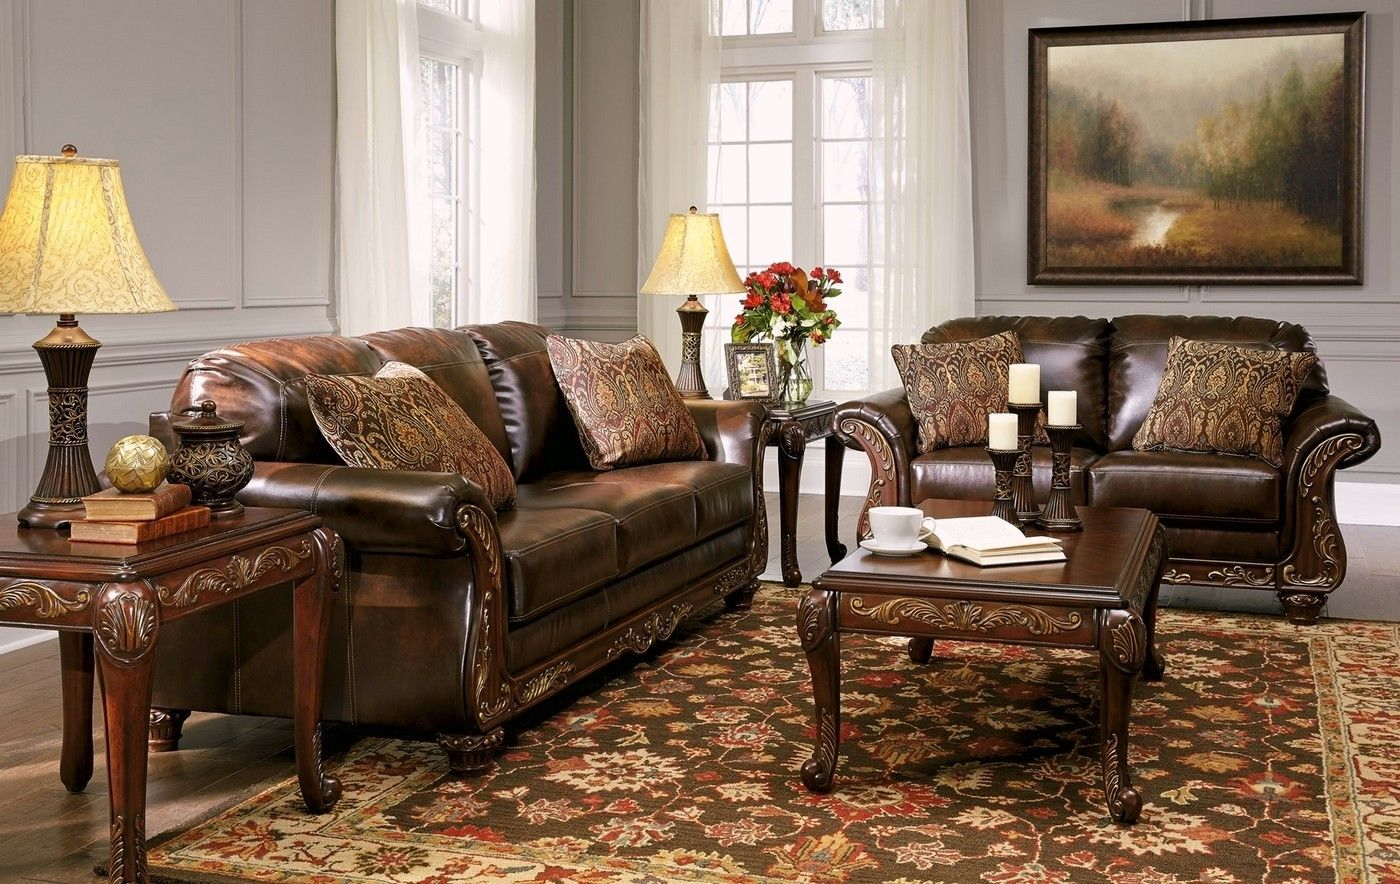 Vanceton brown leather traditional wood sofa loveseat Living room sofa set